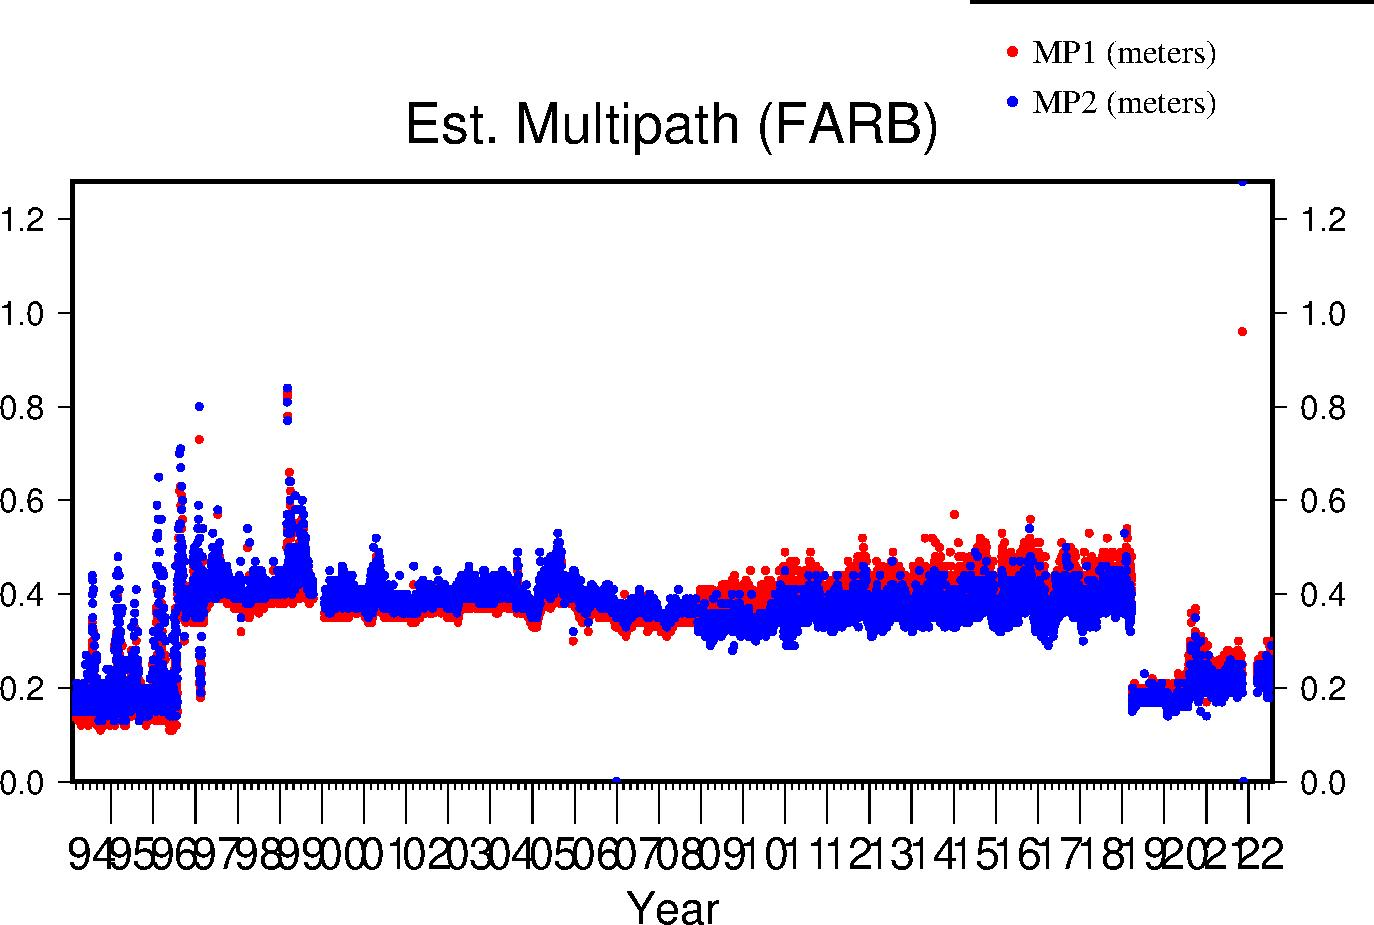 FARB multipath lifetime